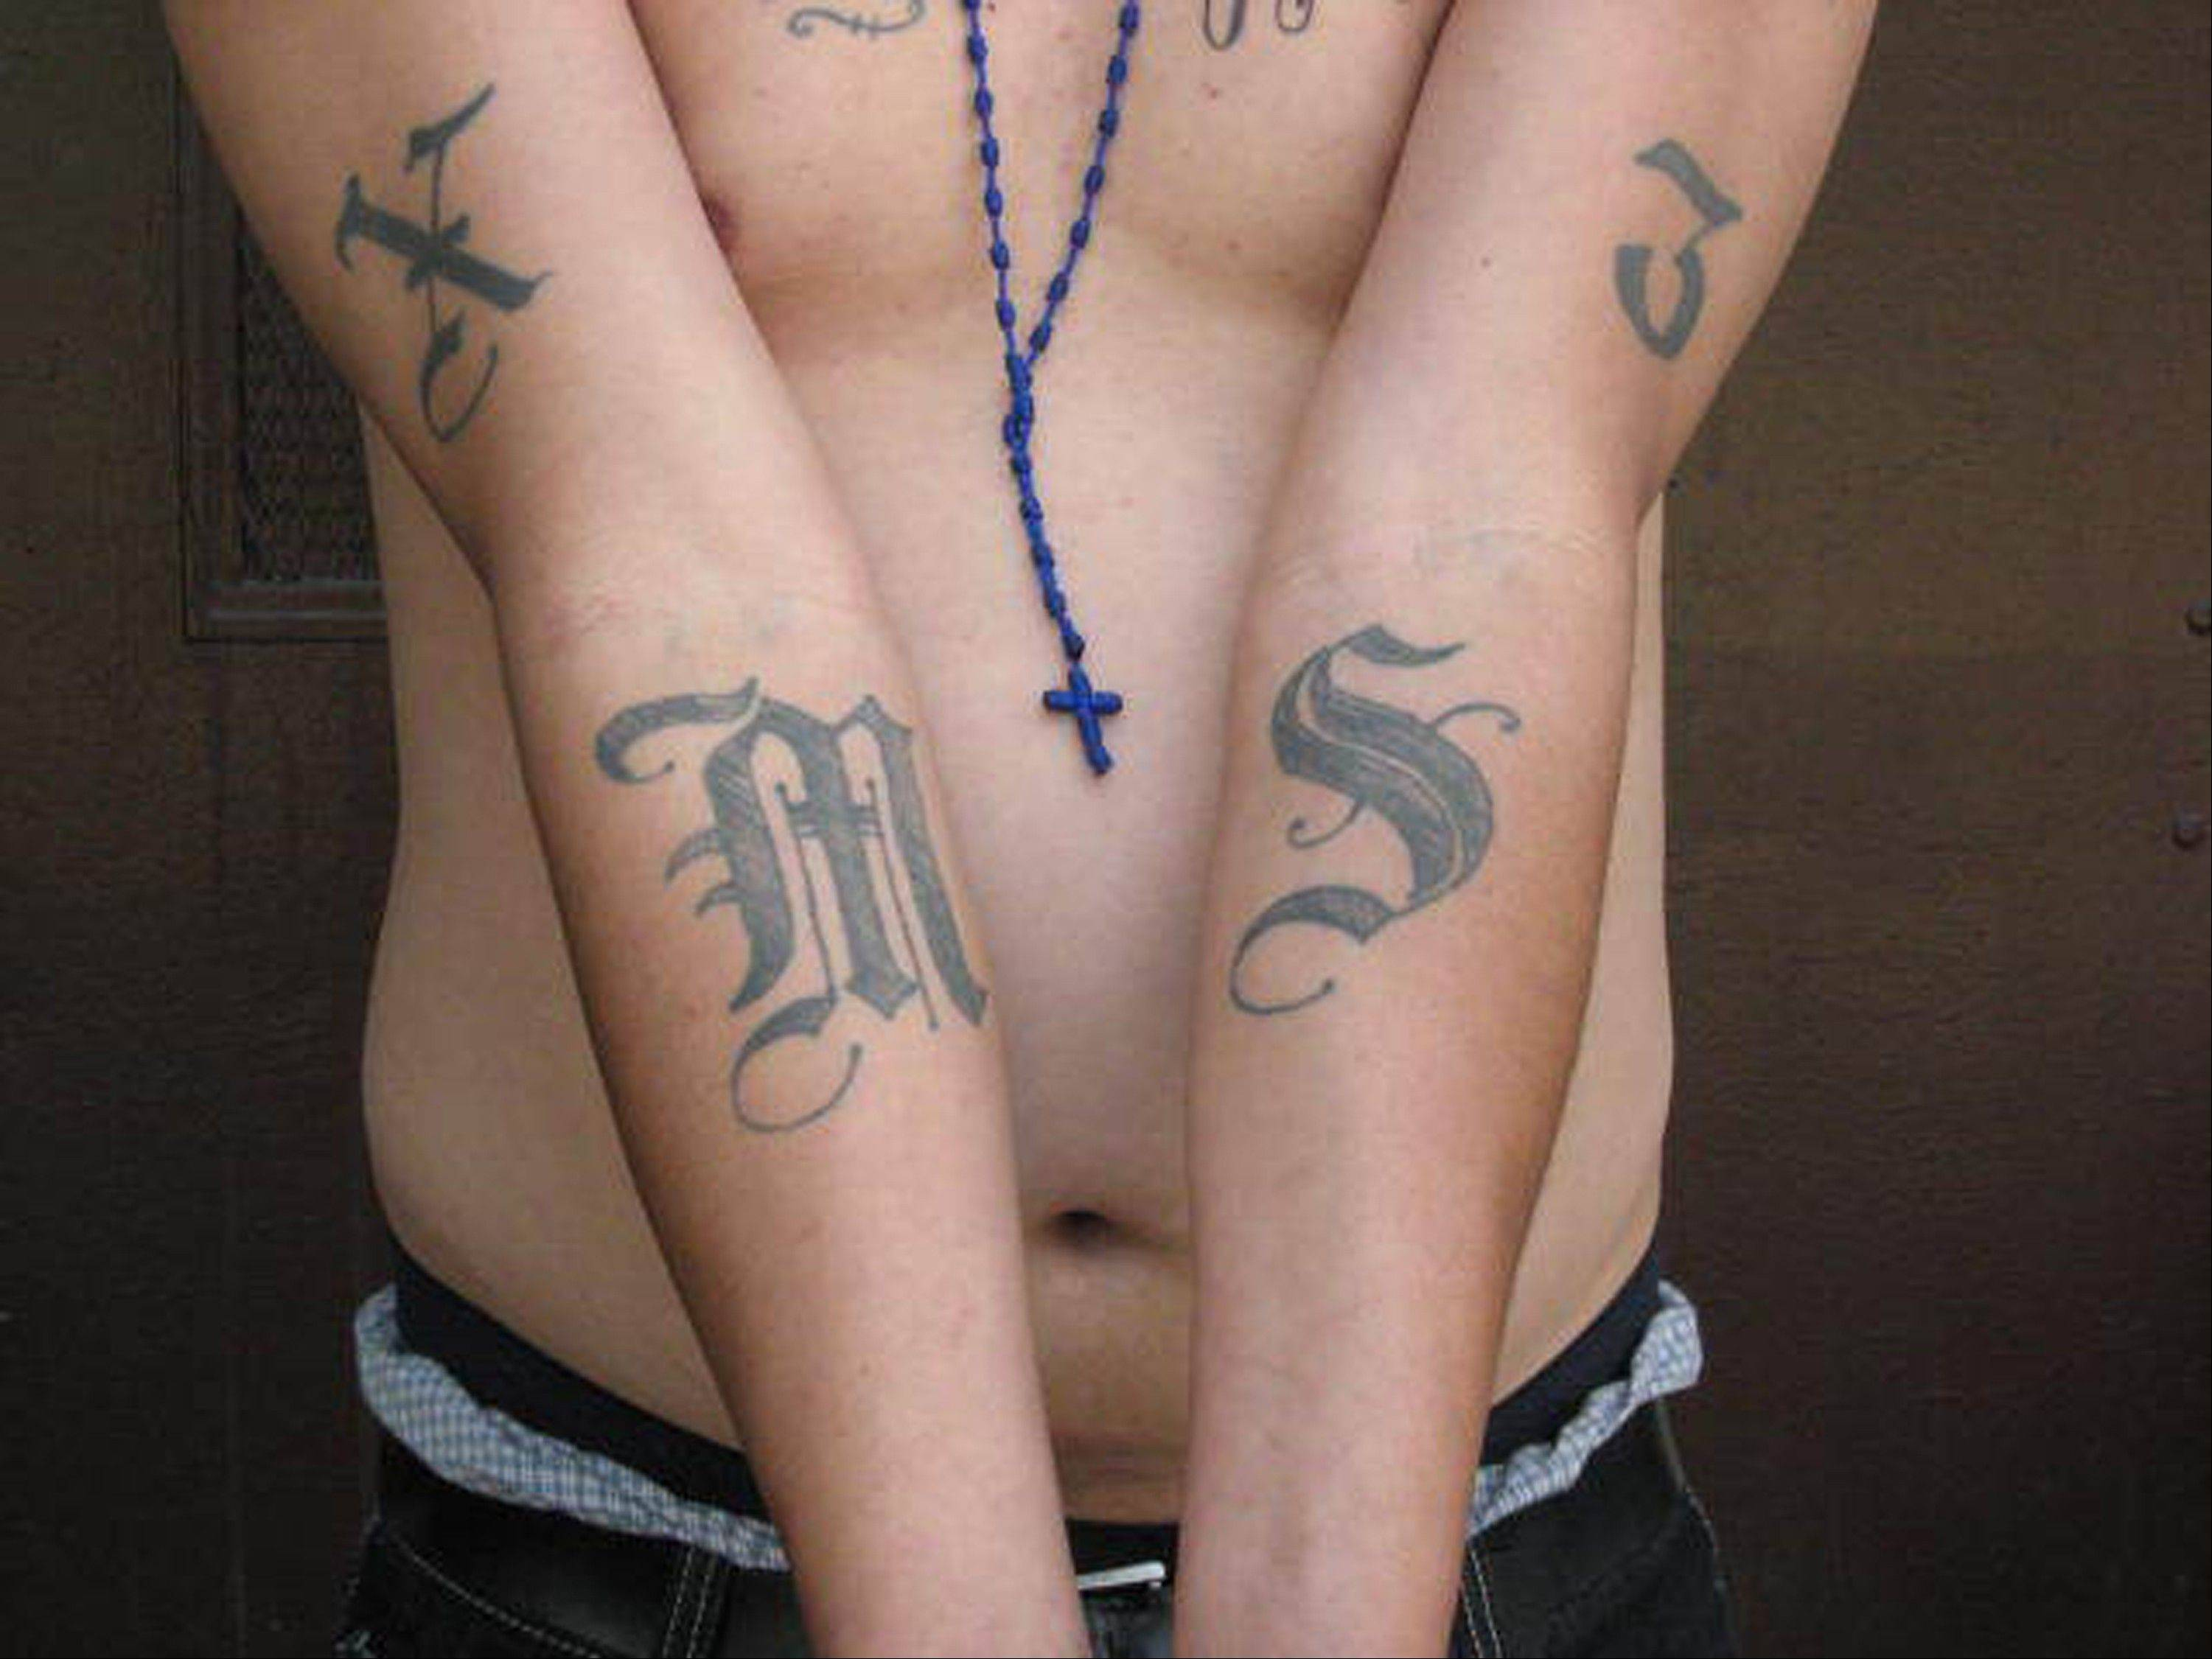 This handout photo provided by US Immigration and Customs Enforcement, taken June 23, 2008 in Washington, shows an example of a tattoo of the gang Mara Salvatrucha (MS-13).